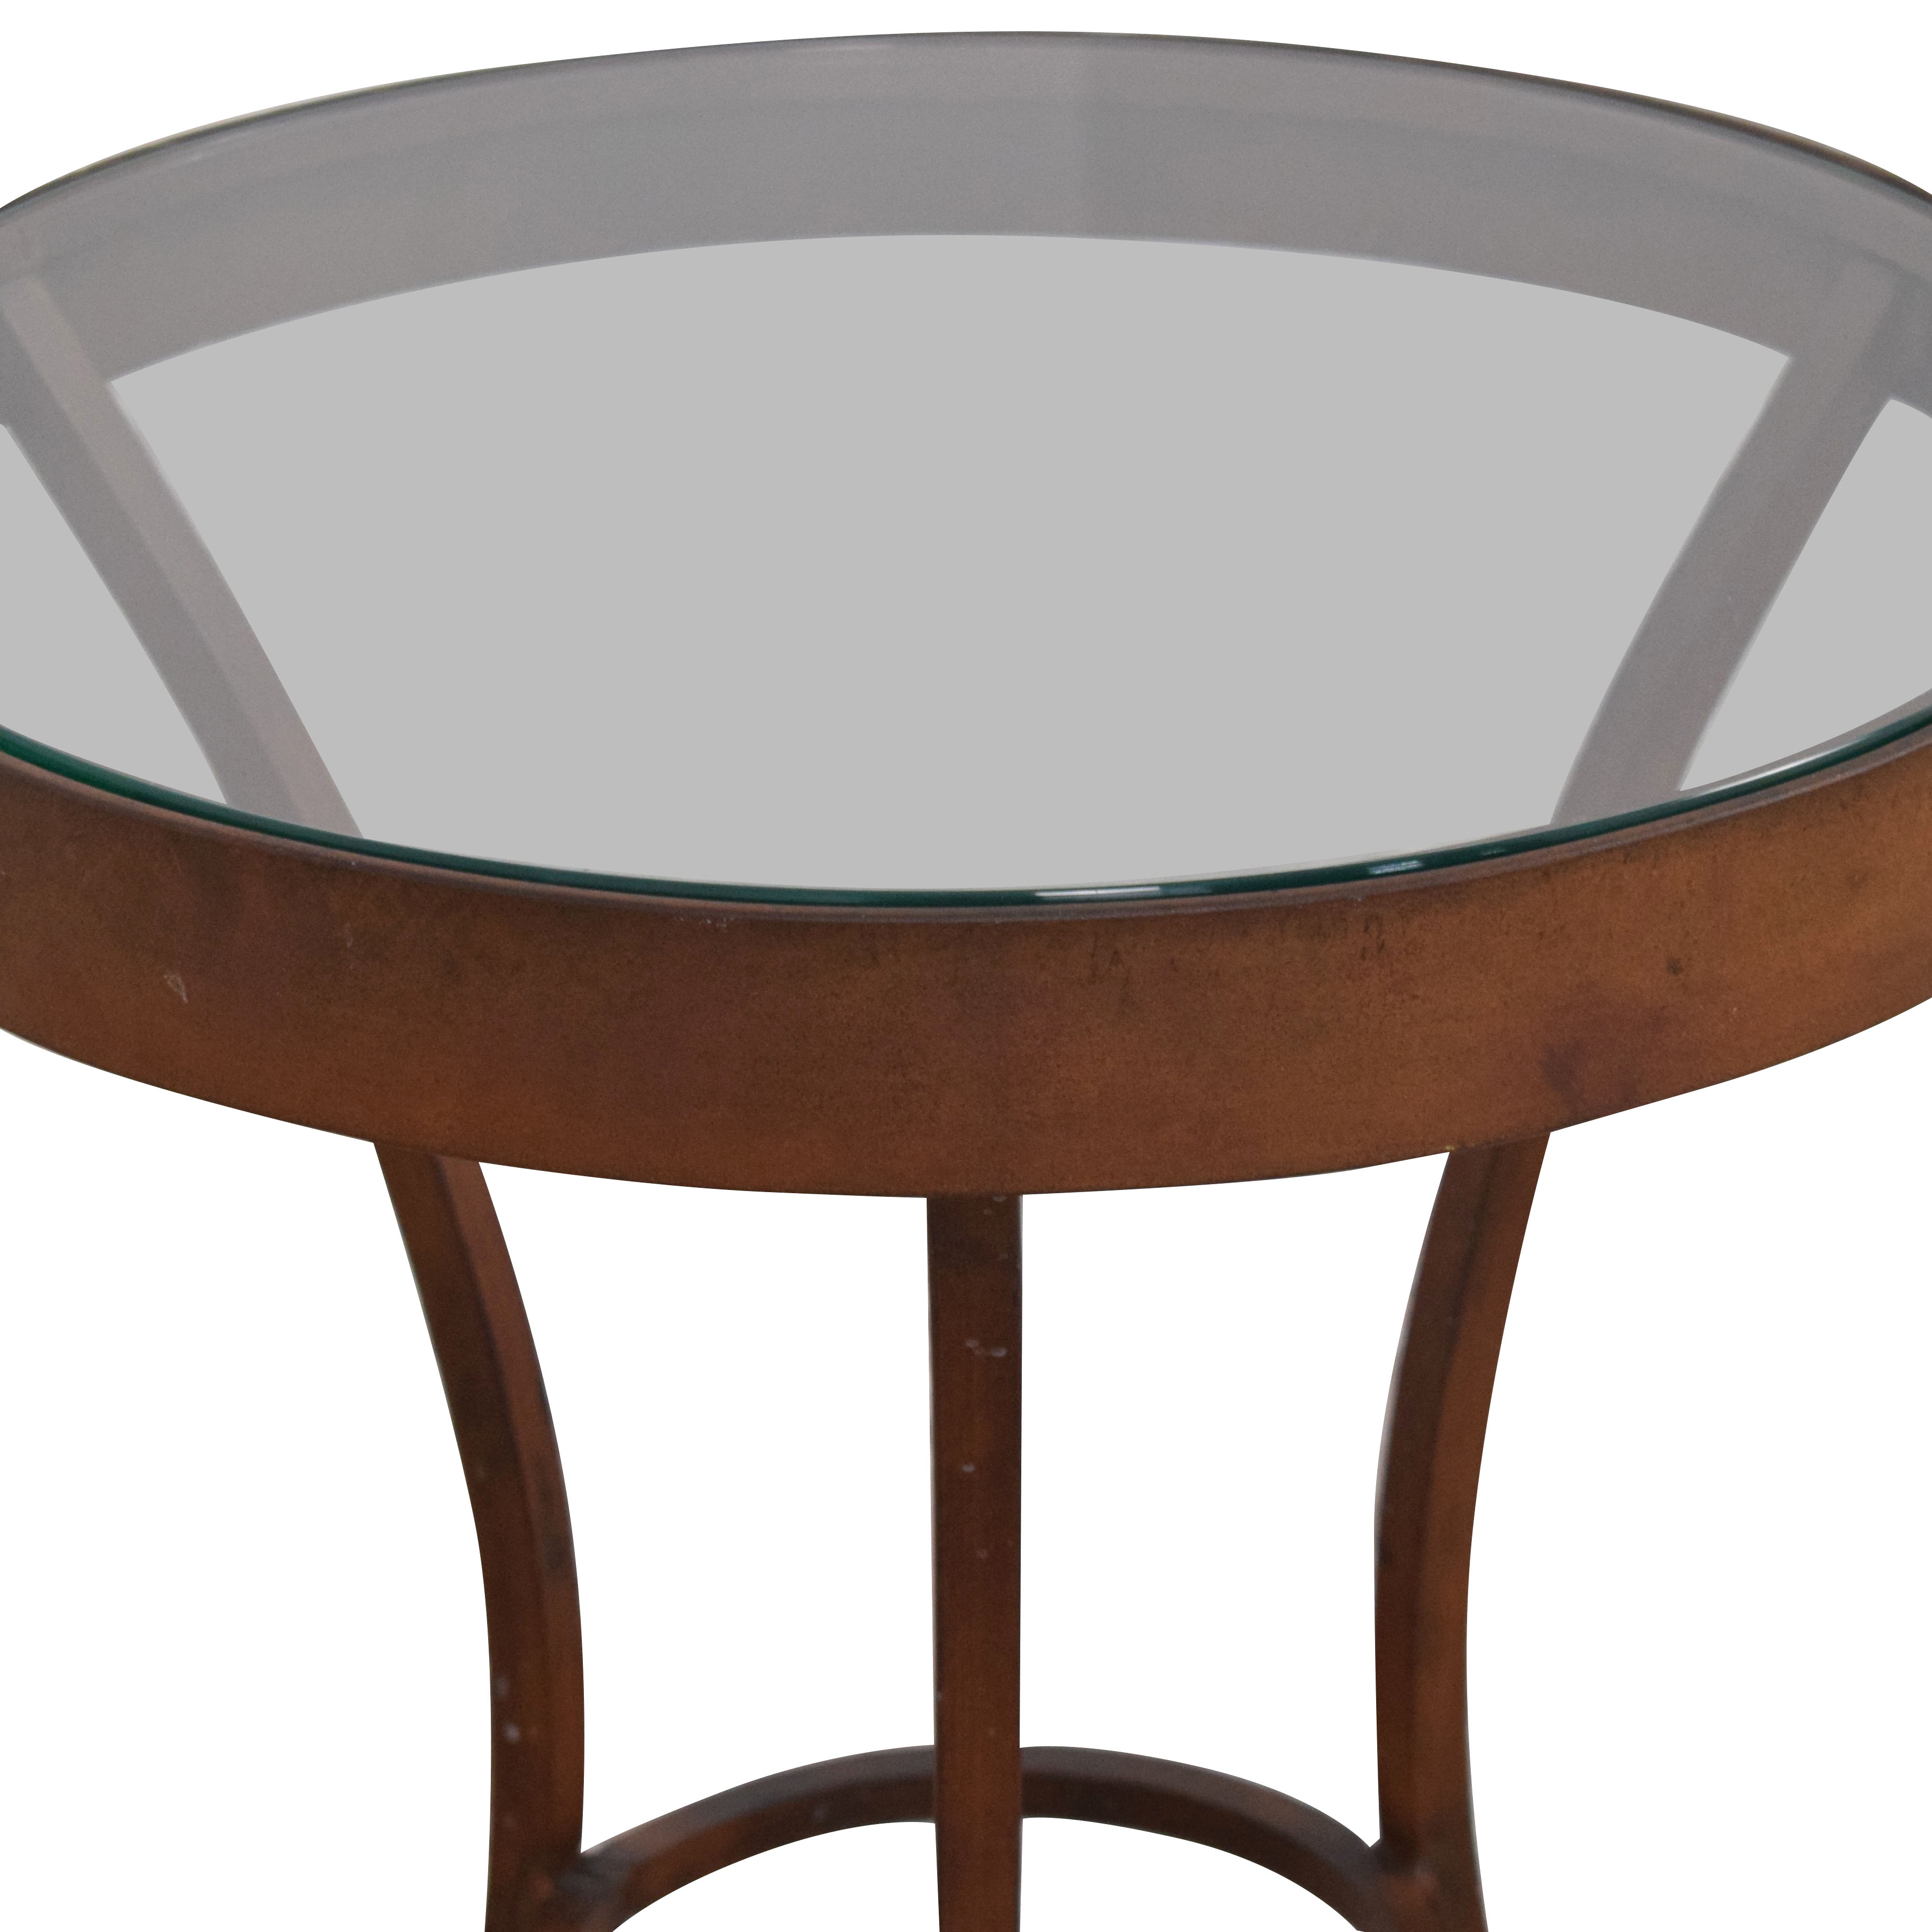 Crate & Barrel Crate & Barrel Side Table with Glass Top dimensions